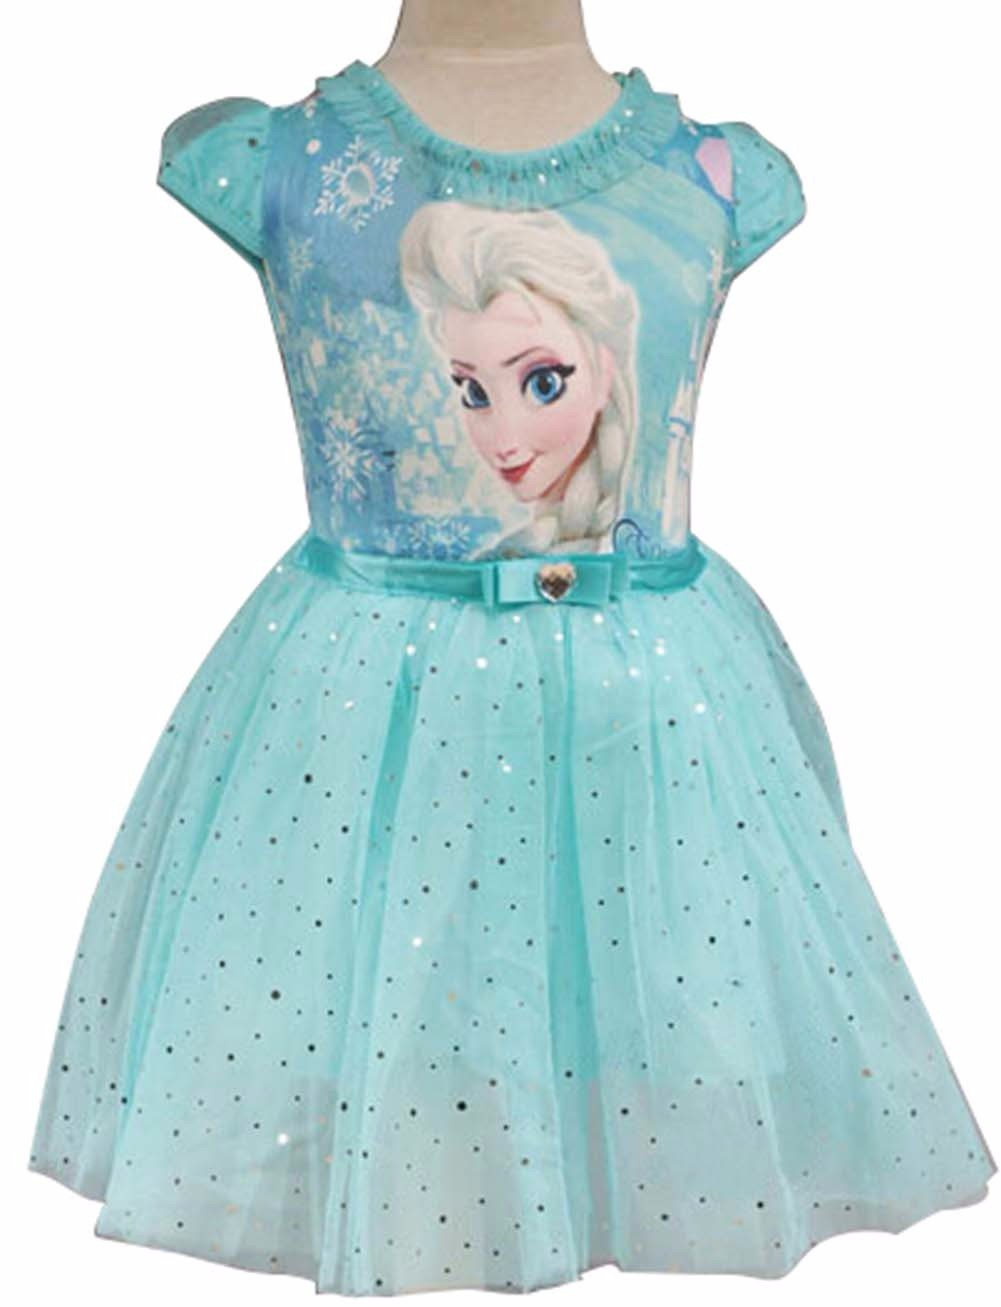 Janeyer®Little Girls' Snowflakes Dress Princess Christmas Costume by Janeyer